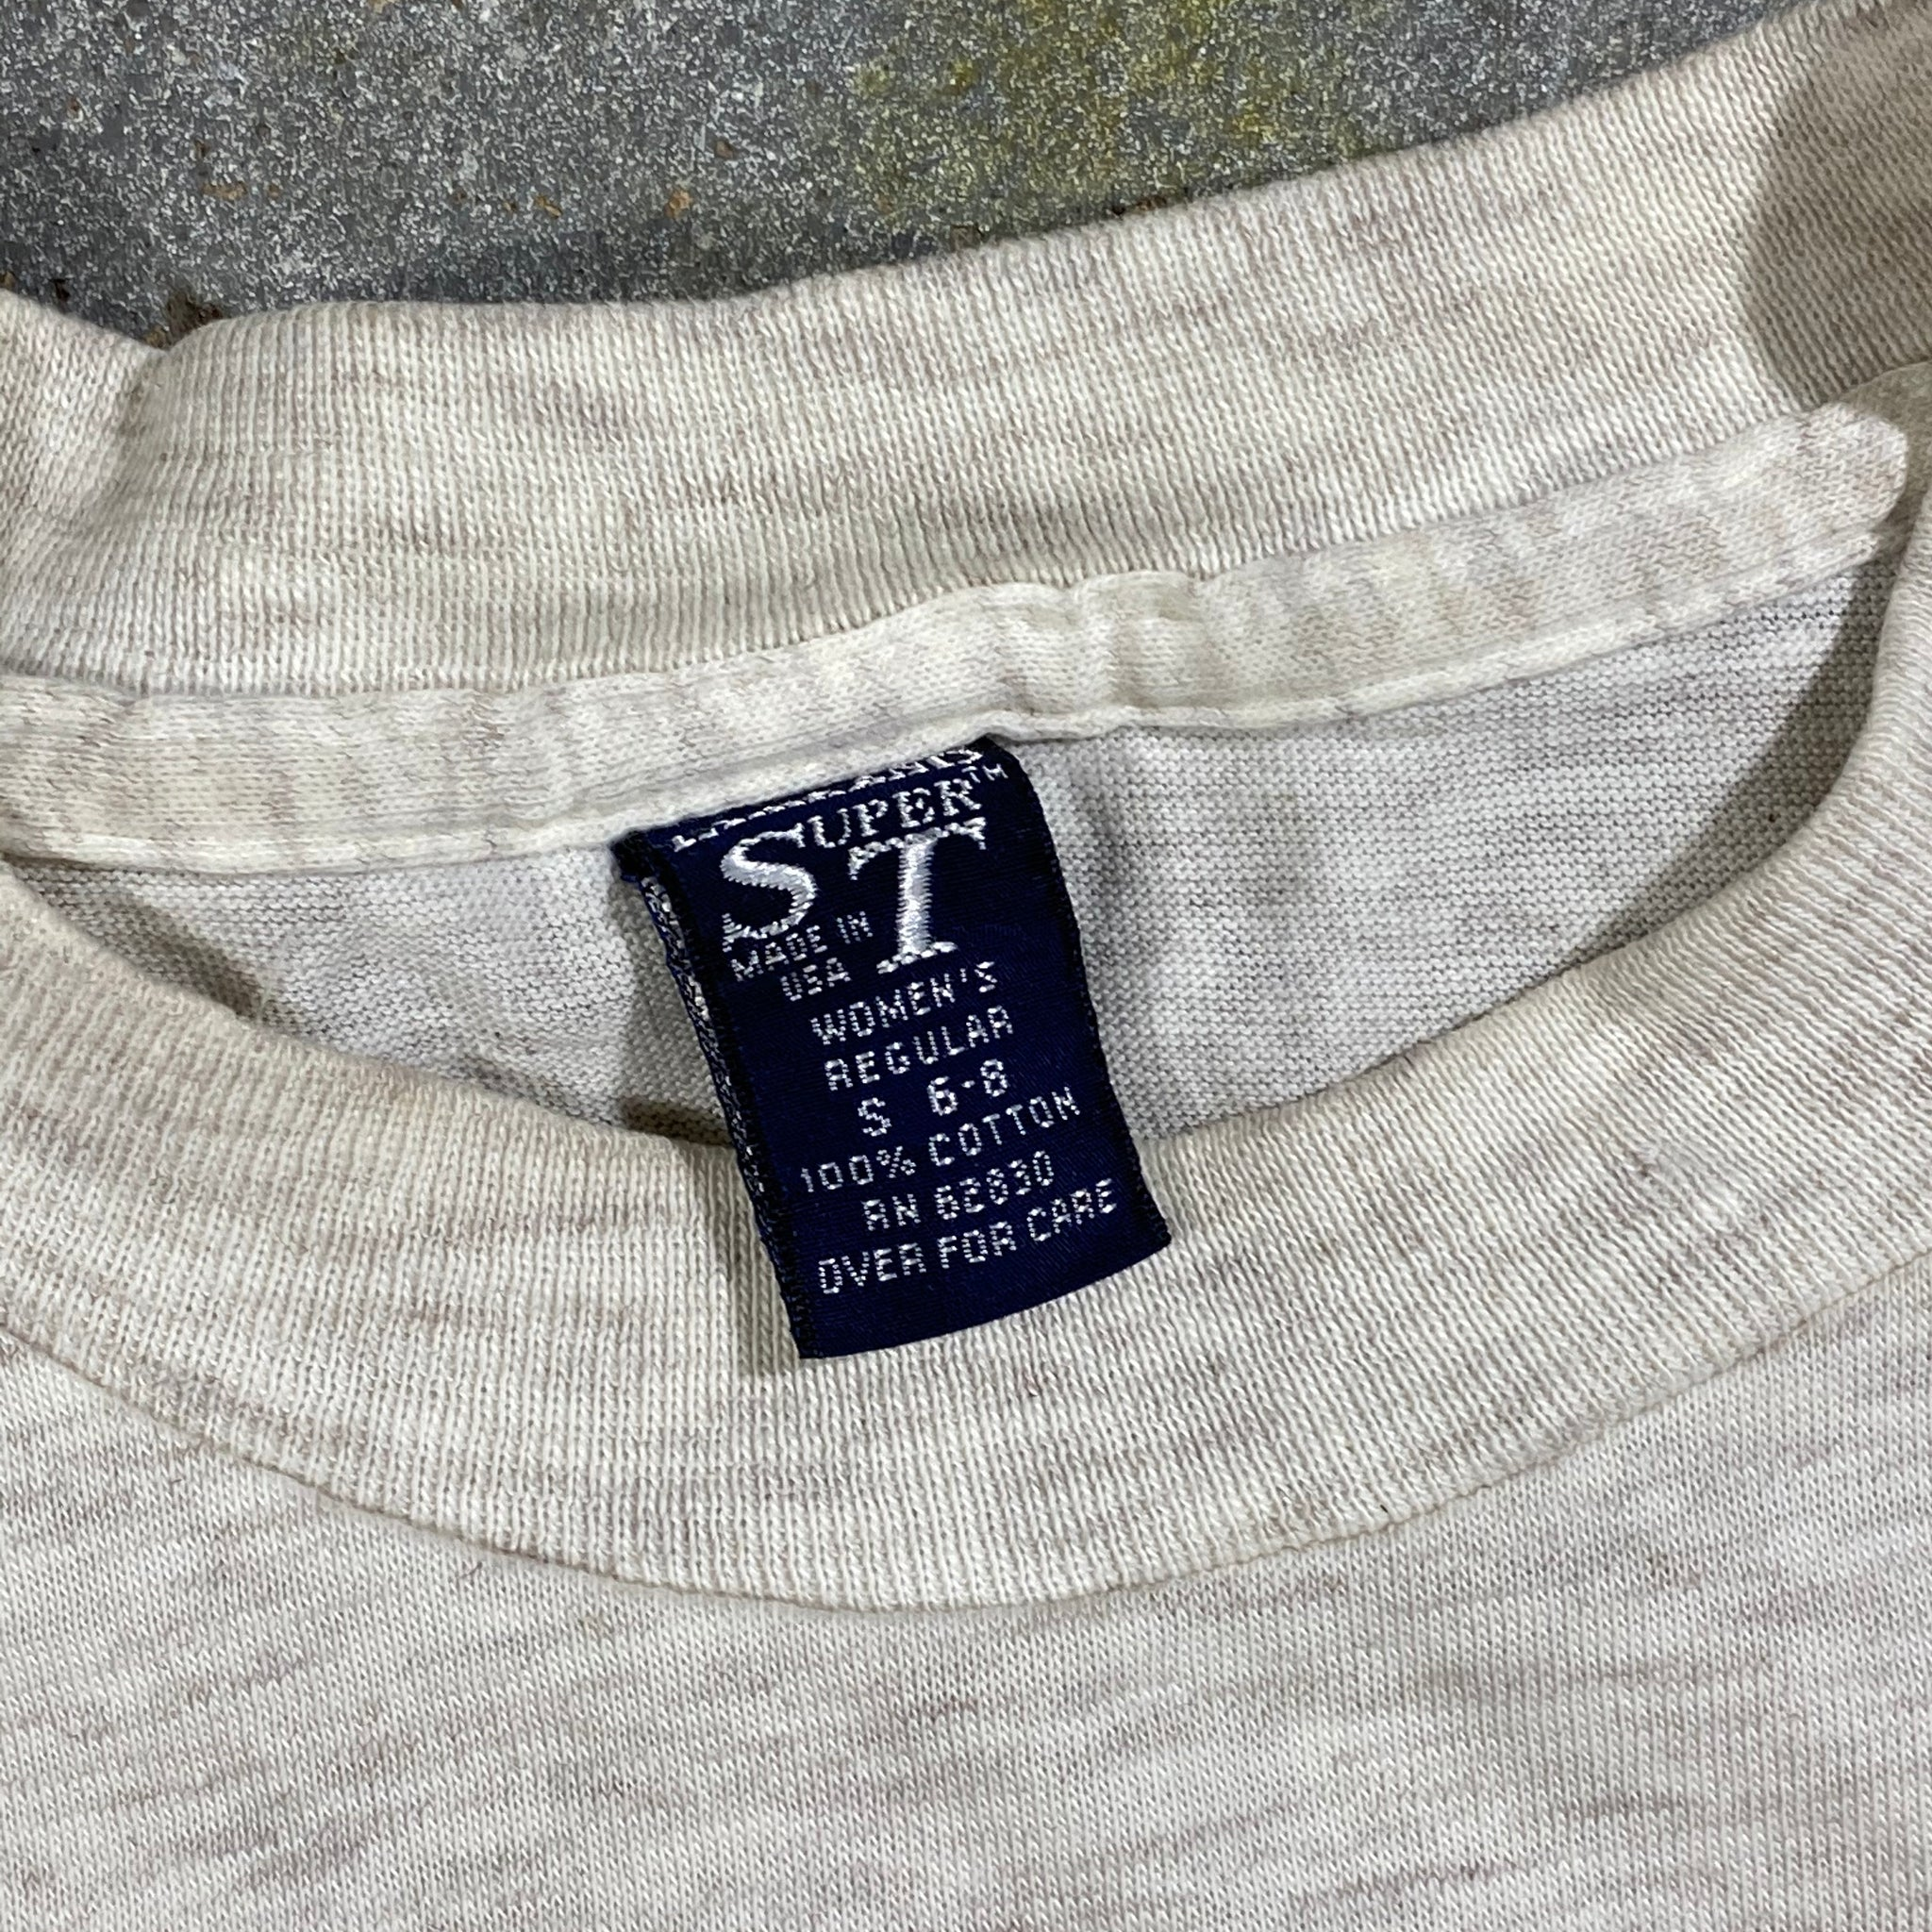 Lands end super tee. long sleeve. pocket. Made in usa🇺🇸. Xs fit